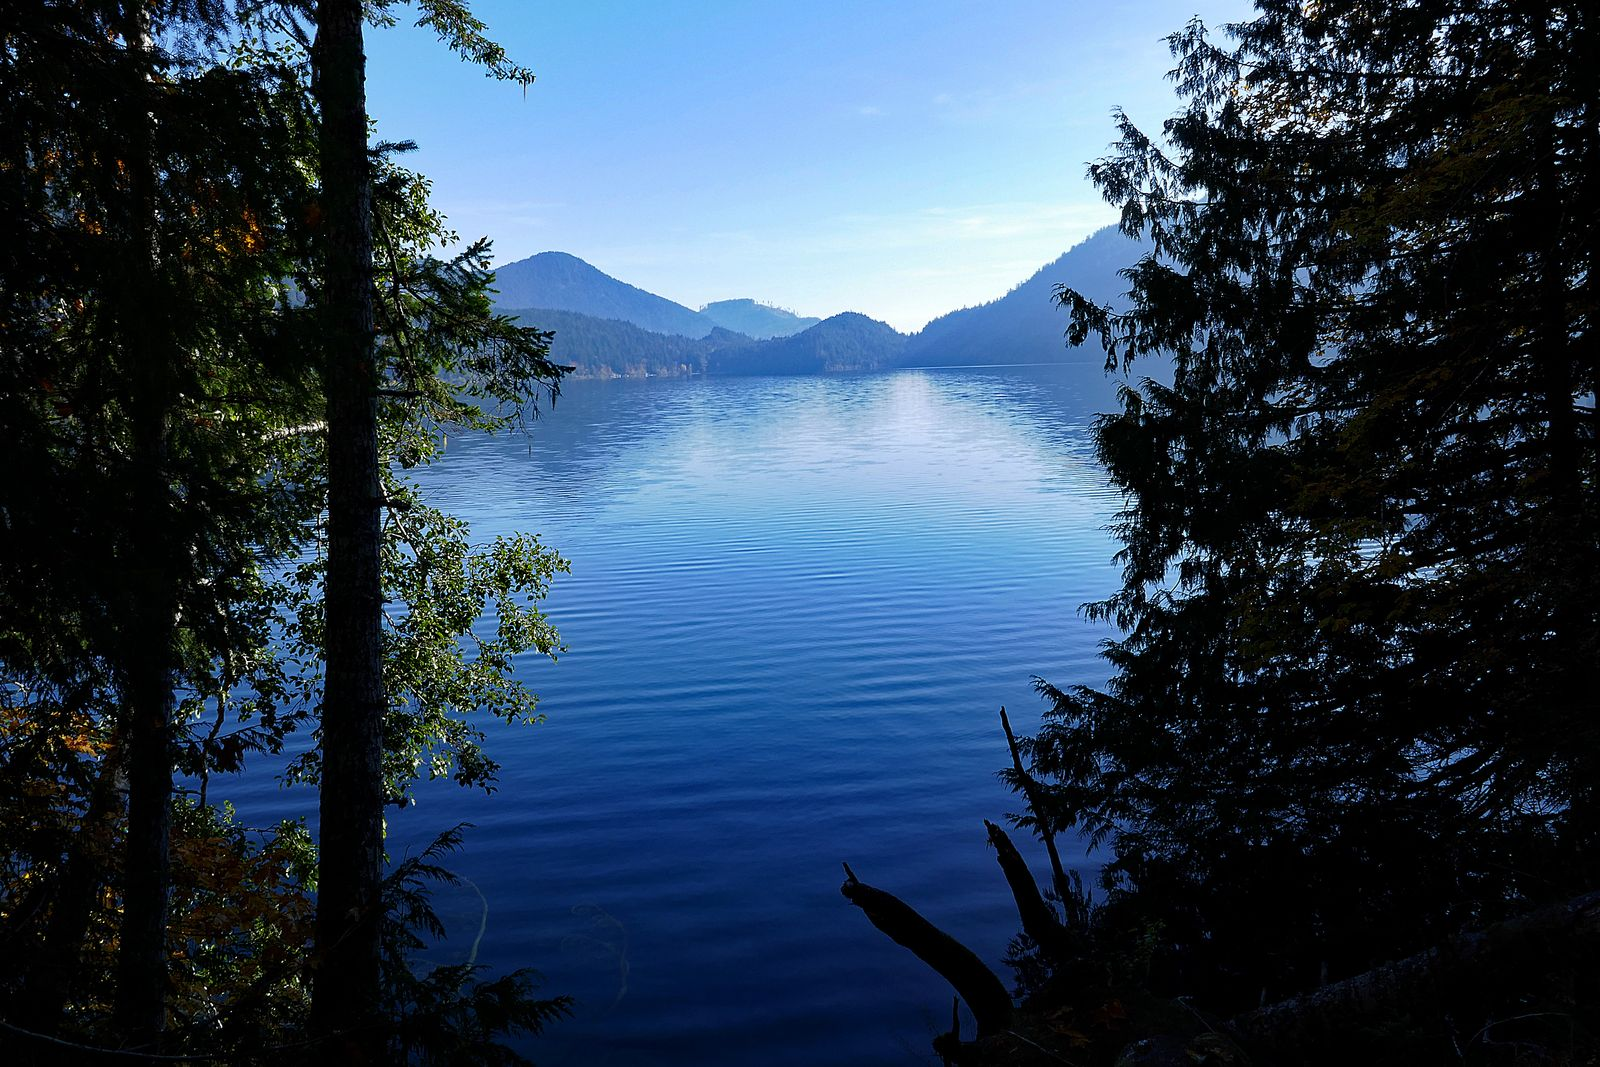 We hiked next to Lake Crescent